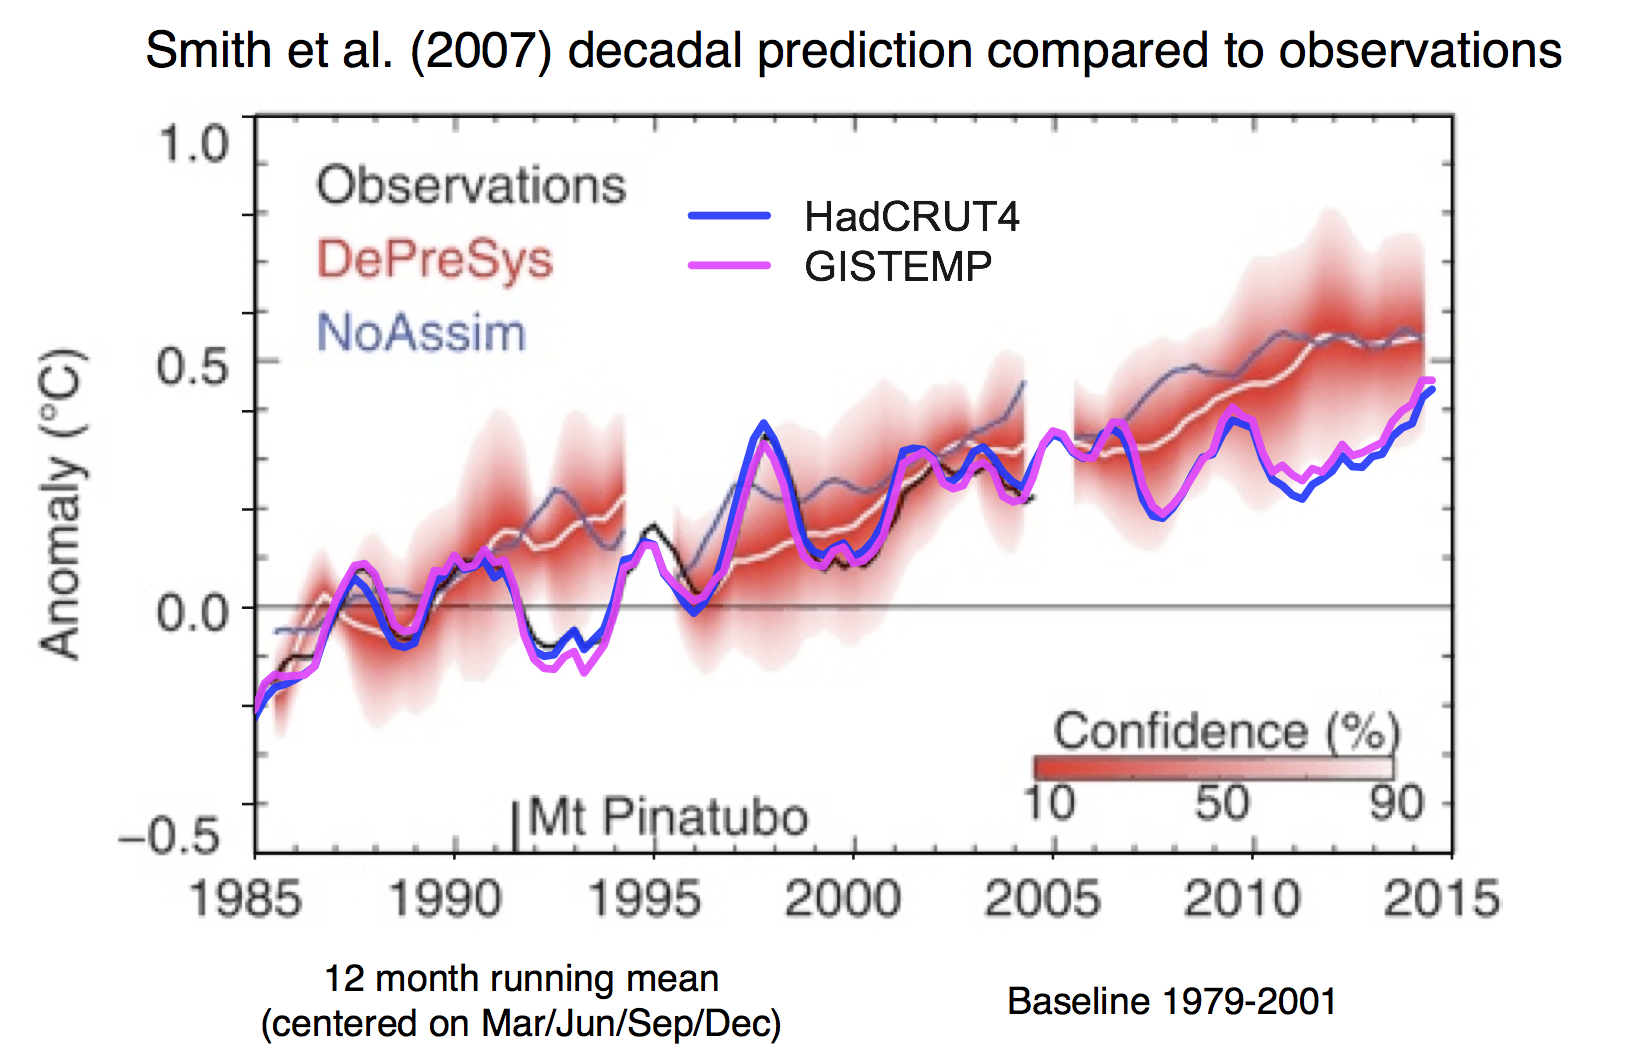 And The Winner Is Realclimate Http Simplecircuitblogspotcom 2009 10 Simplefahrenheit Figure 4 From Smith Et Al 2007 Overlain With Gistemp Hadcrut4 Estimates Of Global Mean Temperature